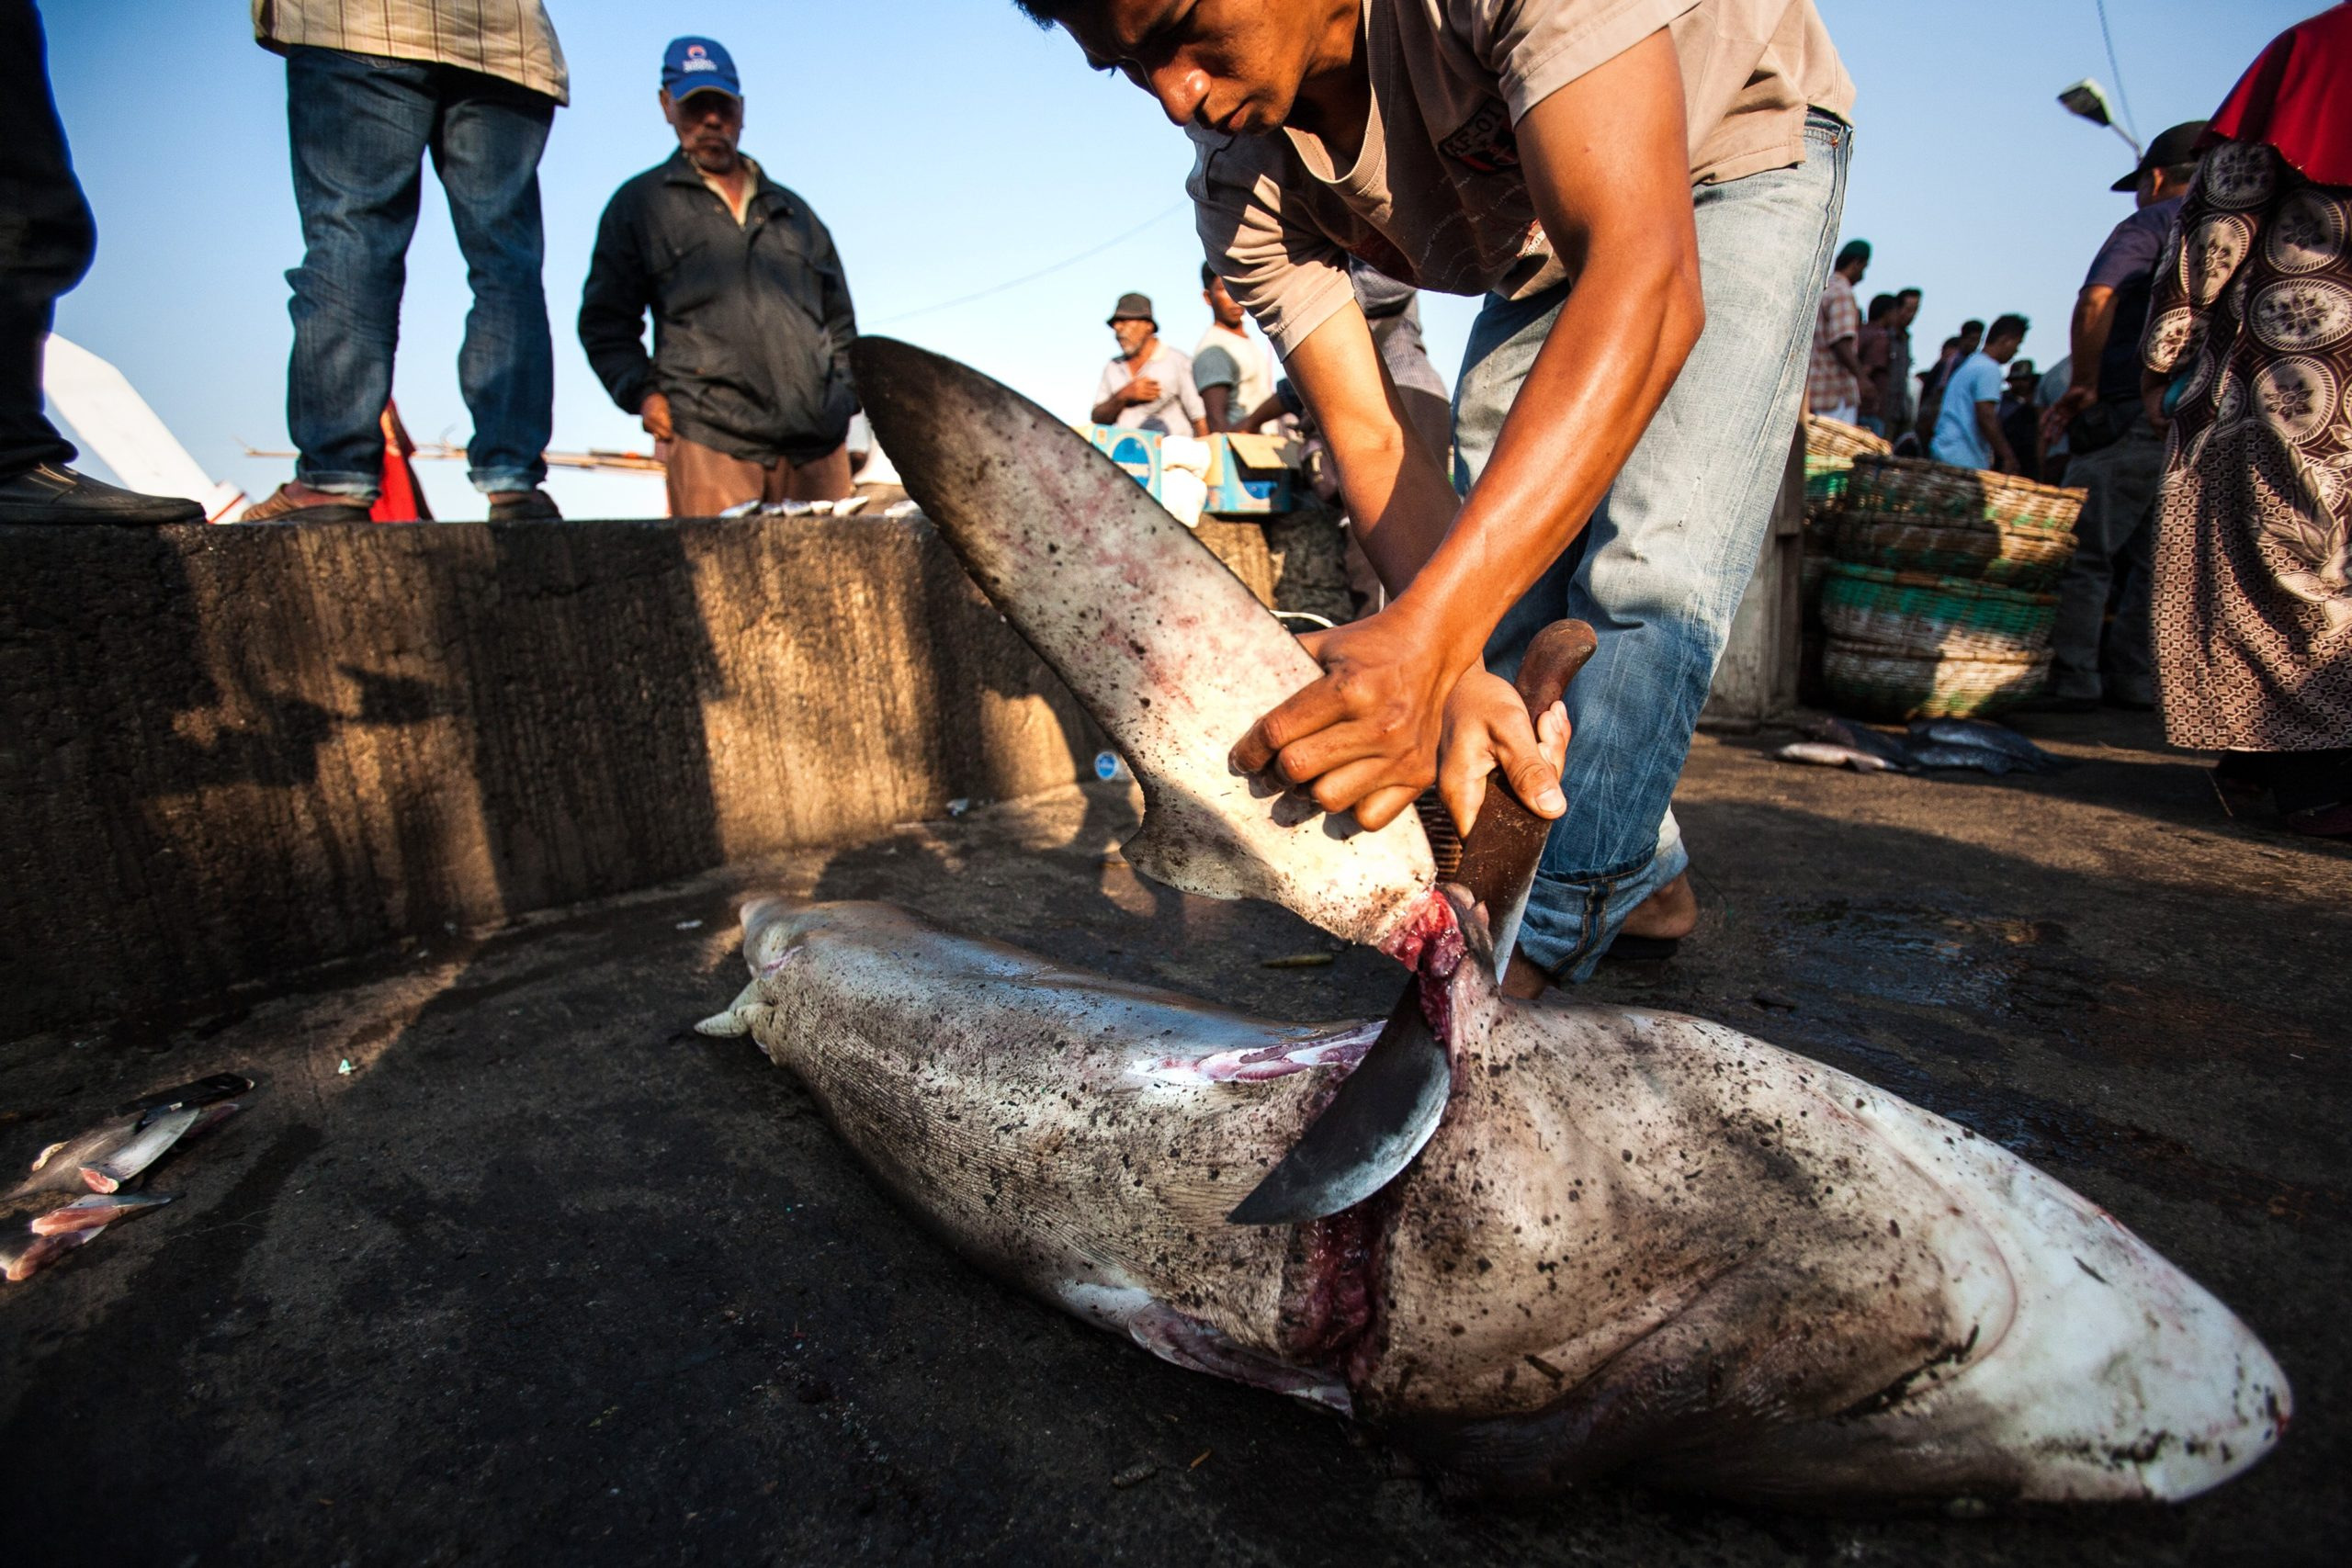 An Indonesian fisherman cuts the fin of a shark in Lampulo fish market in Banda Aceh in Aceh province on March 7, 2013. (Photo credit should read CHAIDEER MAHYUDDIN/AFP via Getty Images)